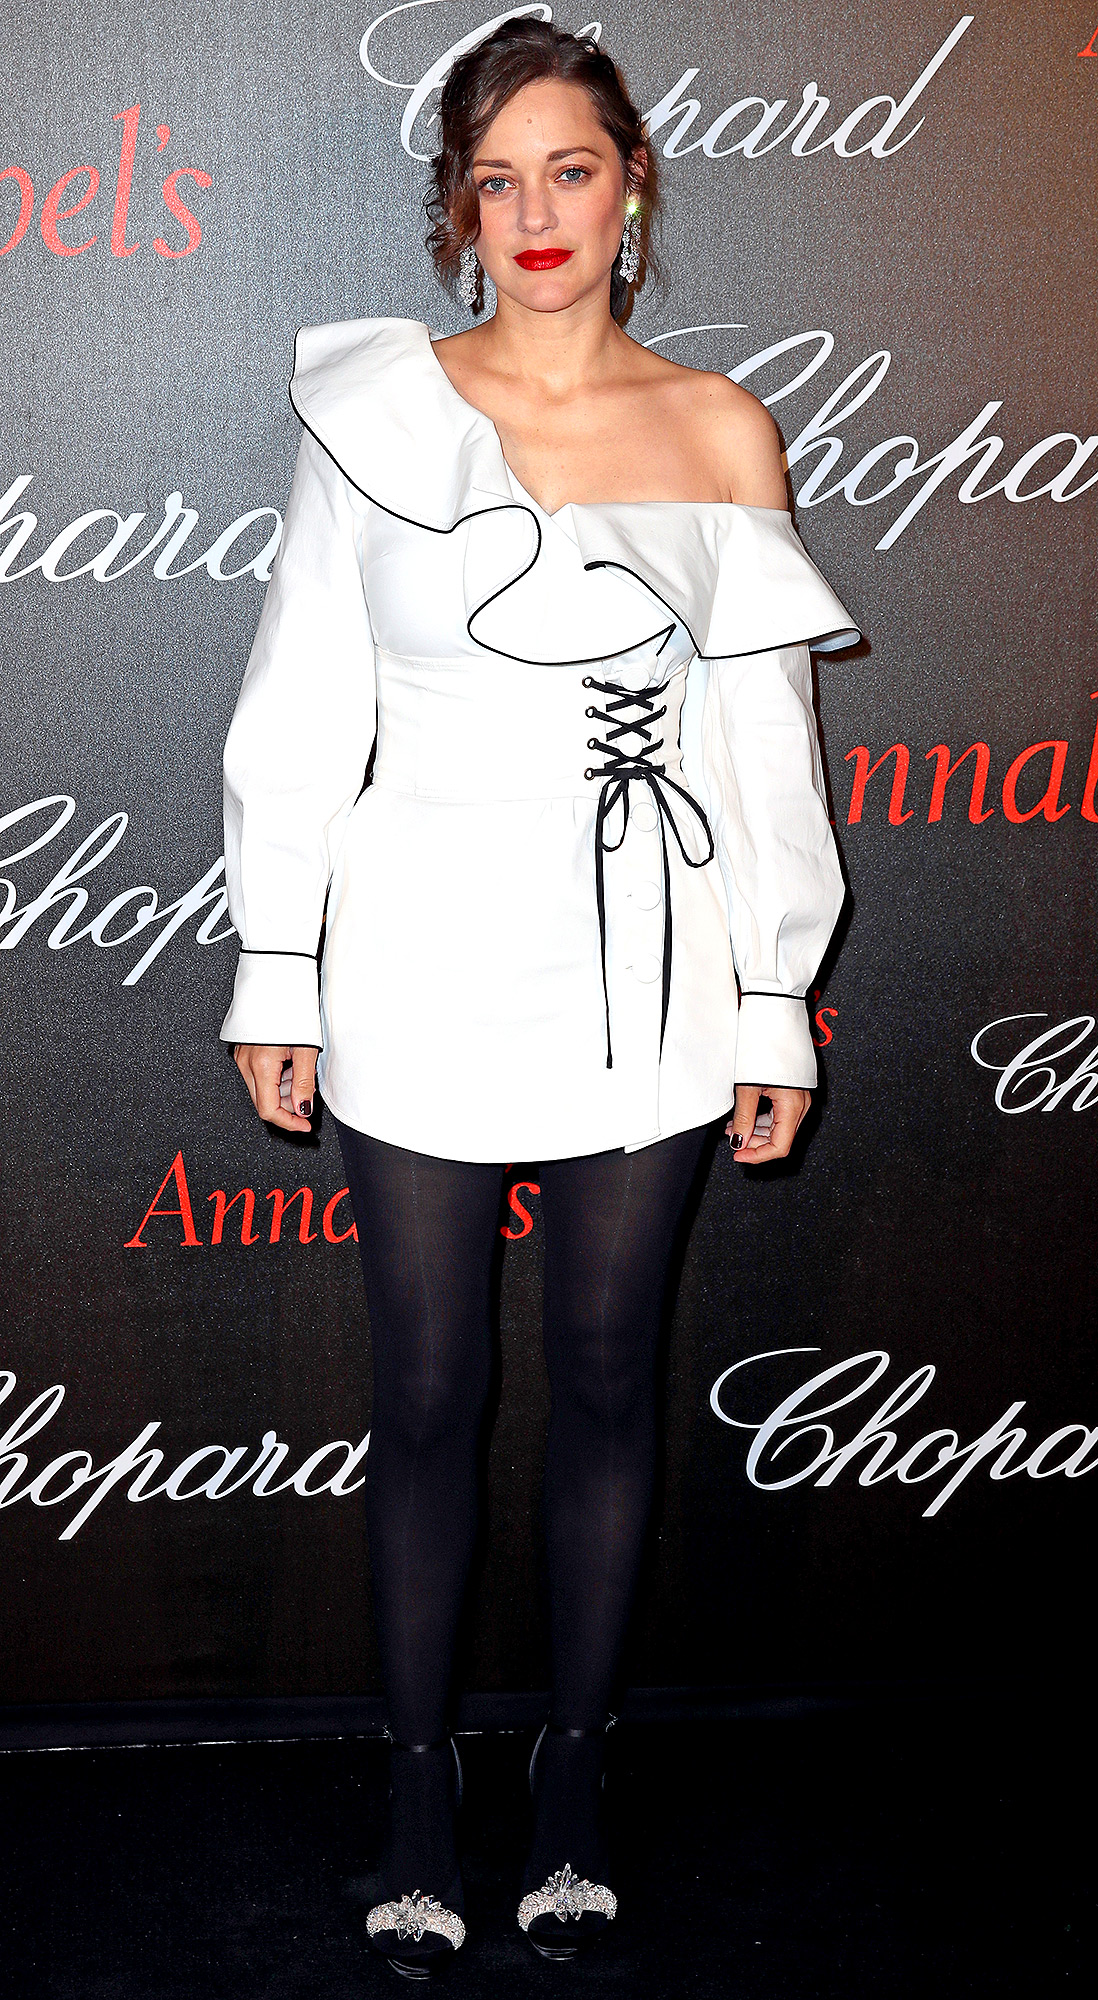 Annabel's & Chopard Party - The 70th Annual Cannes Film Festival